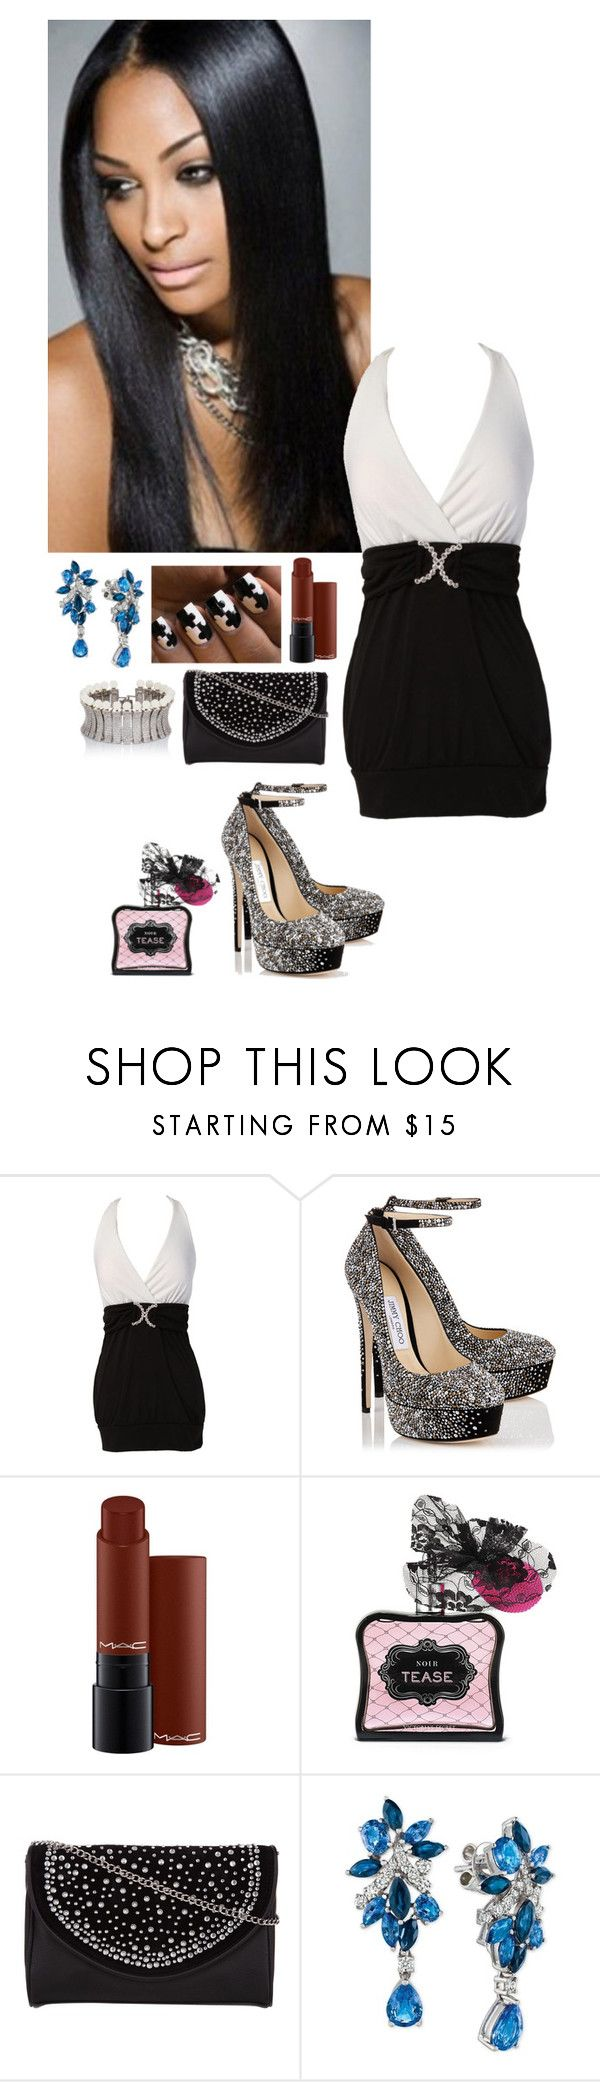 """Alex - Girl's Night Out"" by kellyspanner ❤ liked on Polyvore featuring Jimmy Choo, MAC Cosmetics, Victoria's Secret, Kardashian Kollection, LE VIAN and Fallon"